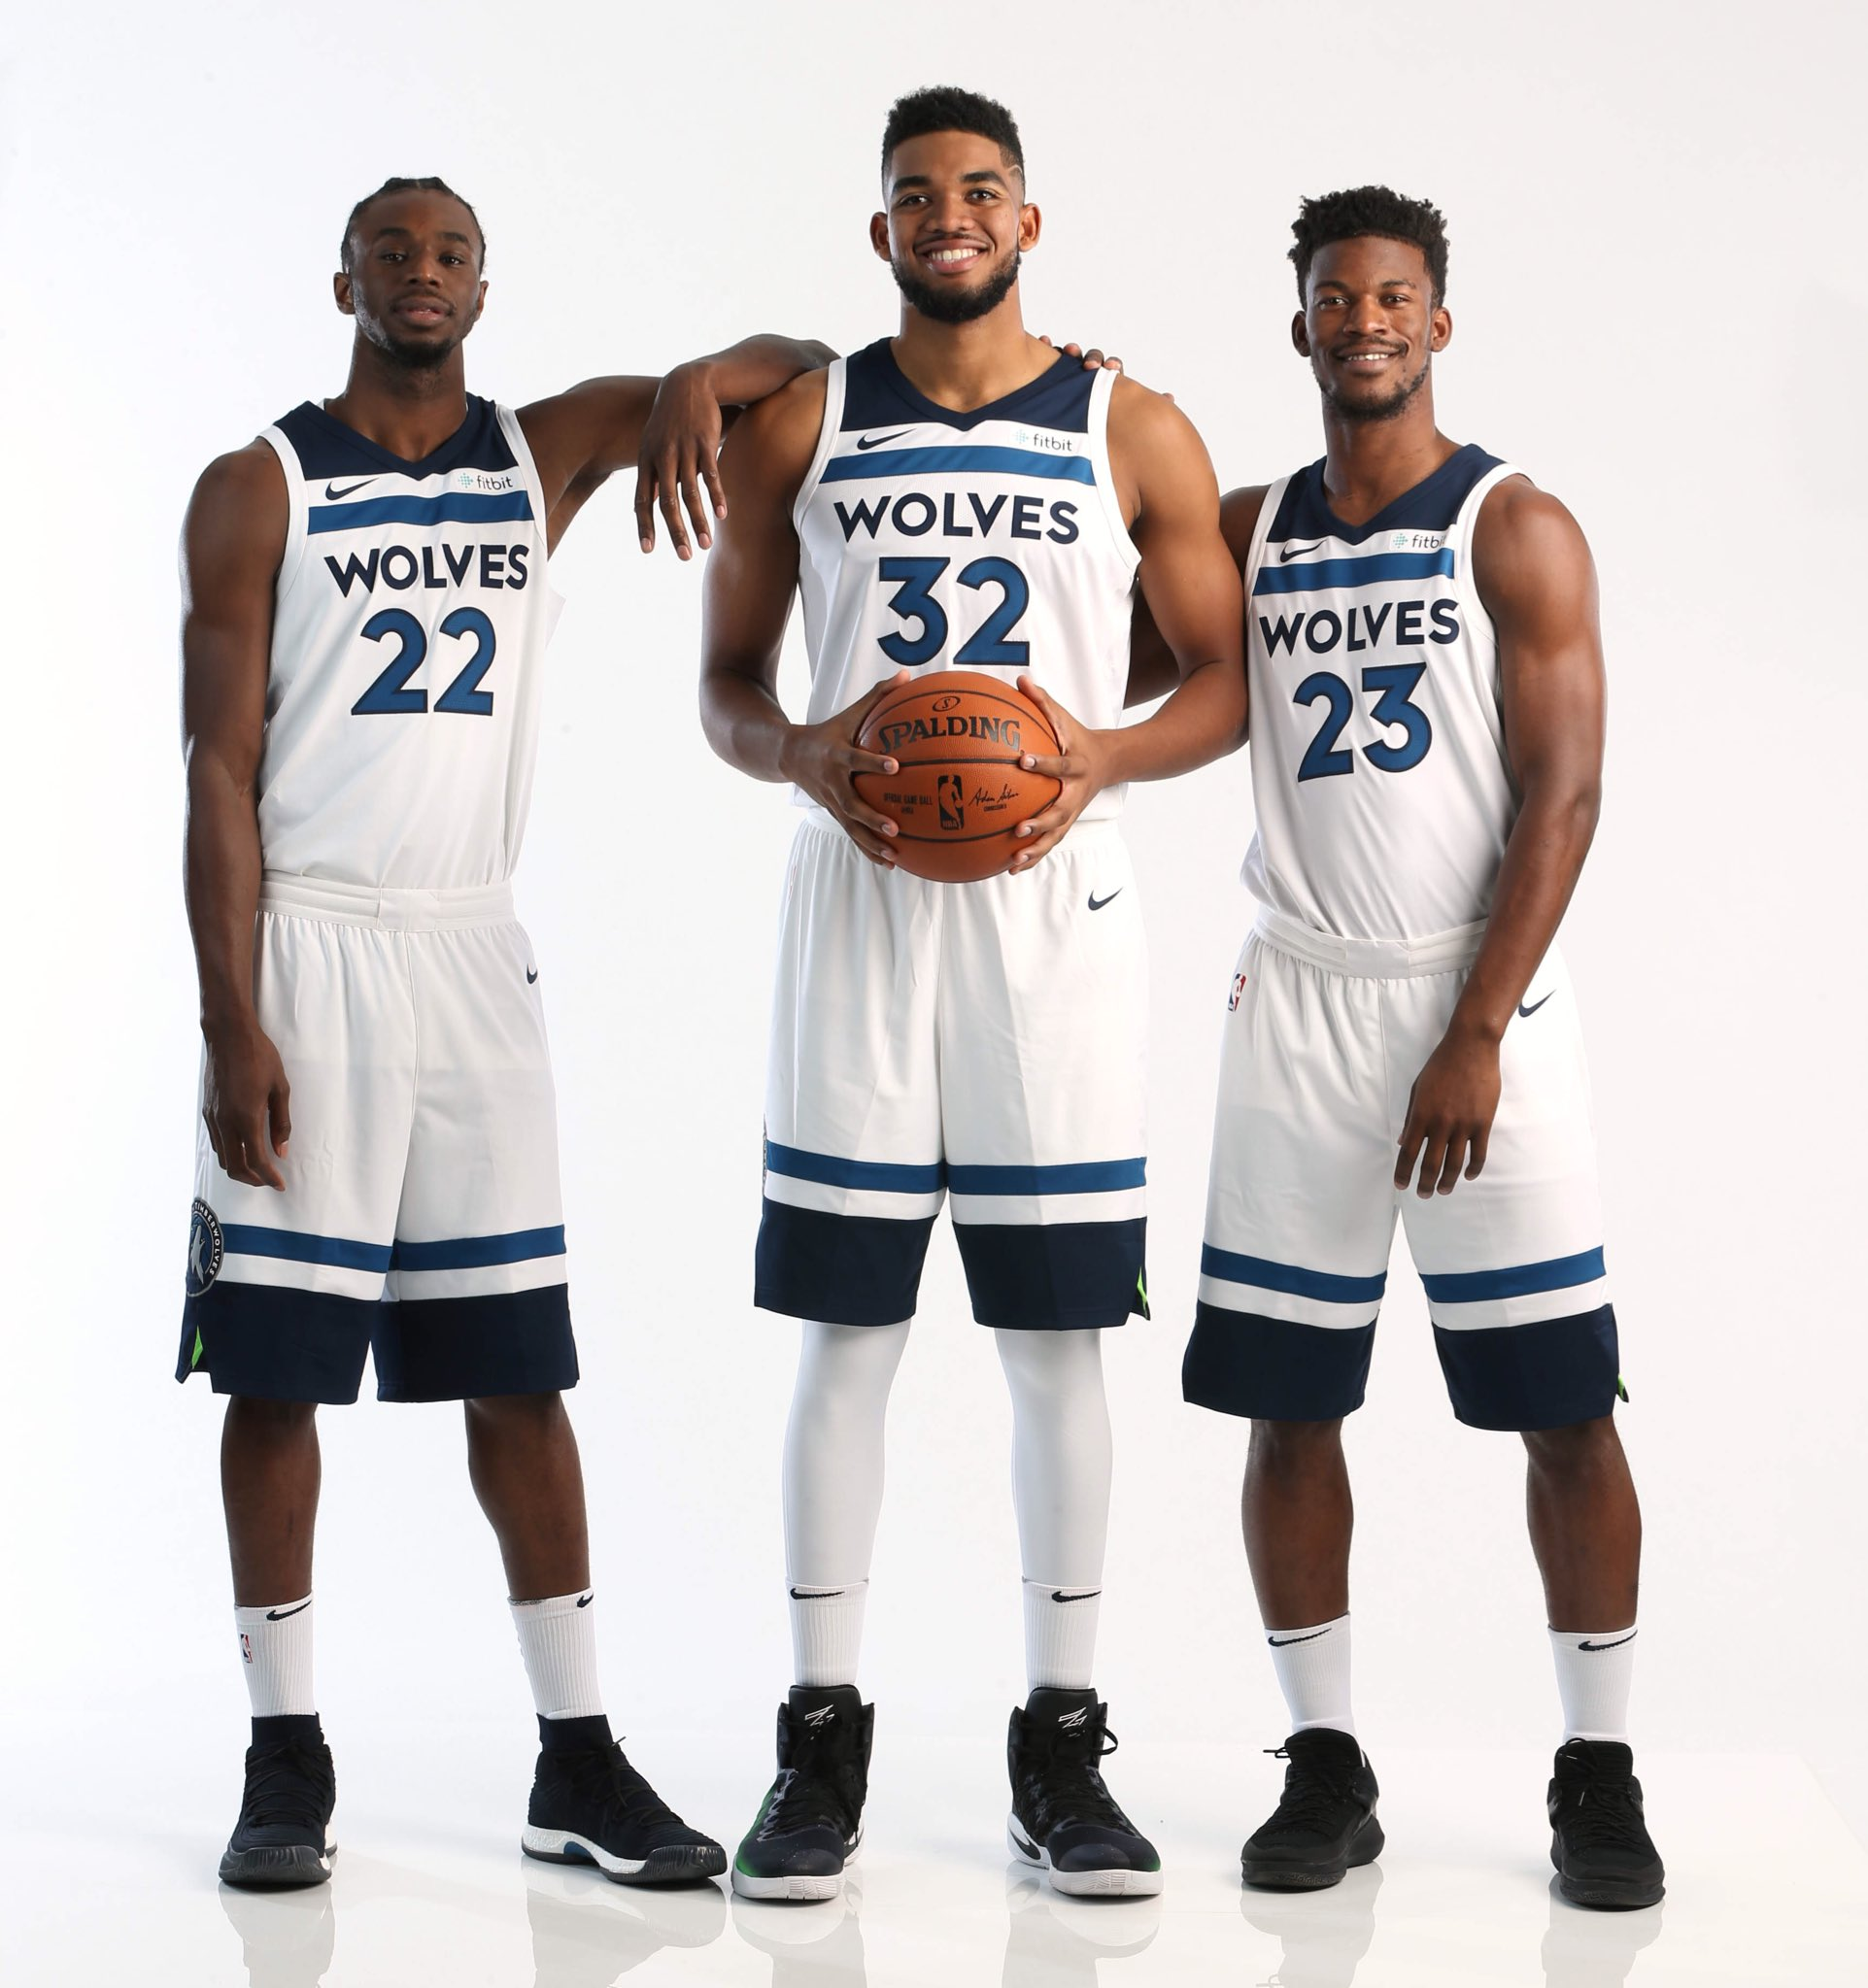 The Pack is Back!   #WolvesMediaDay #NBAMediaDay https://t.co/CwQA9DlvOI